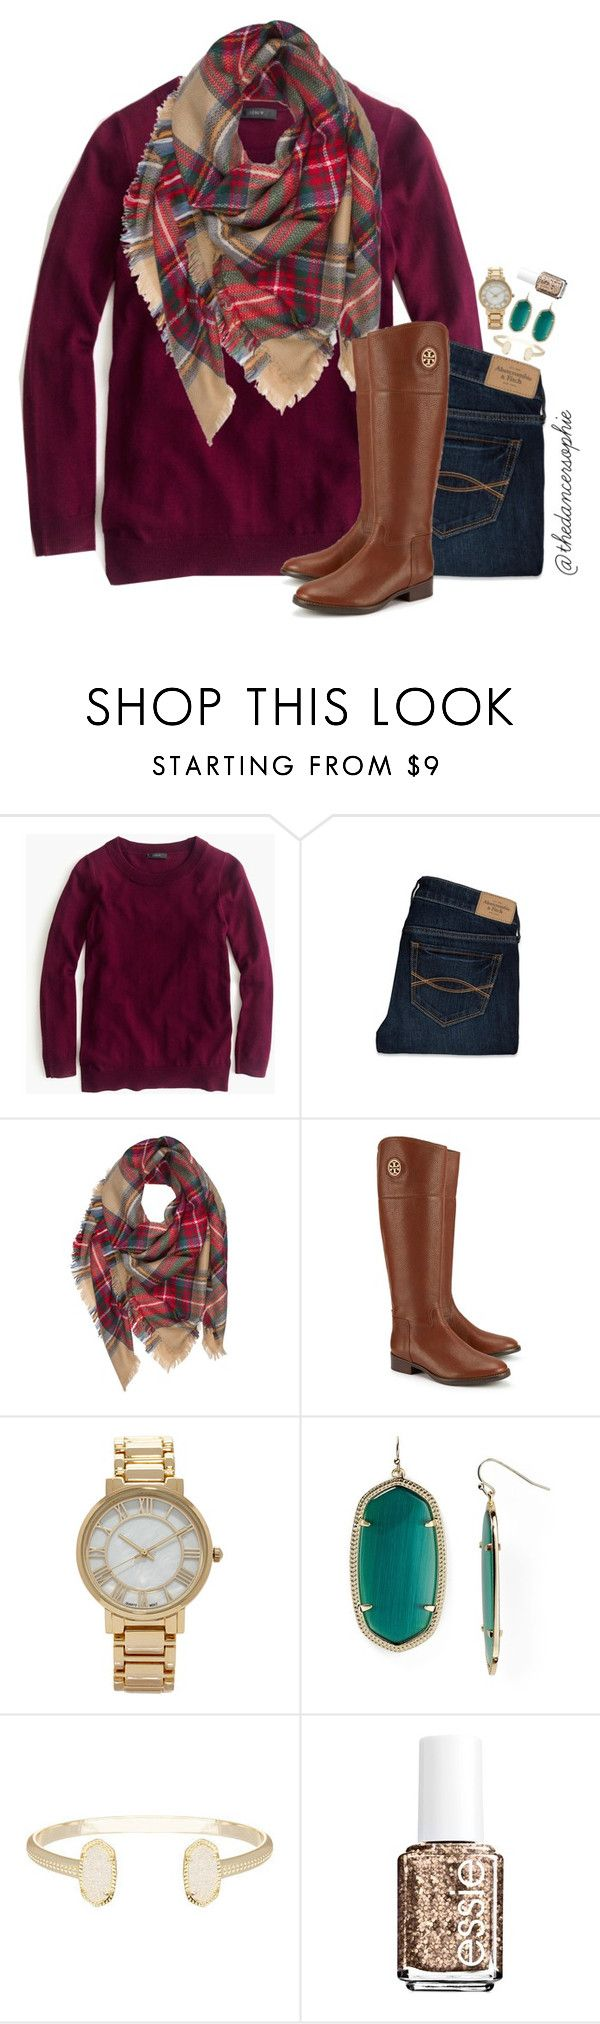 """""""I just ordered a bunch of free preppy stickers!!!"""" by thedancersophie ❤ liked on Polyvore featuring J.Crew, Abercrombie & Fitch, Tory Burch, Forever 21, Kendra Scott and Essie"""